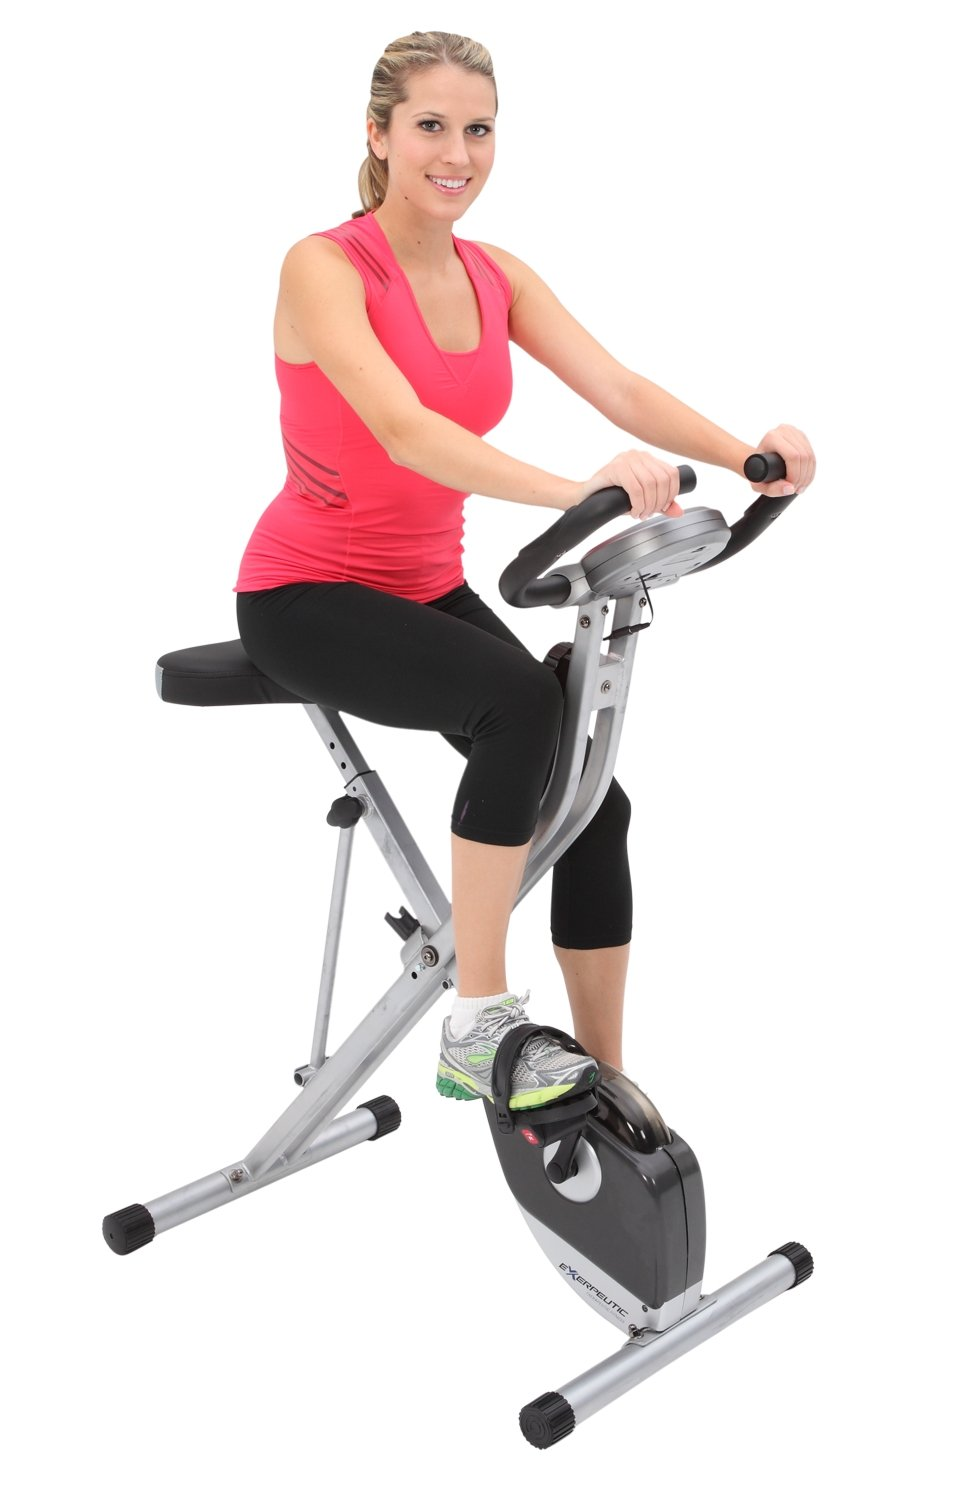 Exerpeutic Folding Magnetic Upright Exercise Bike with 300 lbs Weight Capacity by Exerpeutic (Image #3)